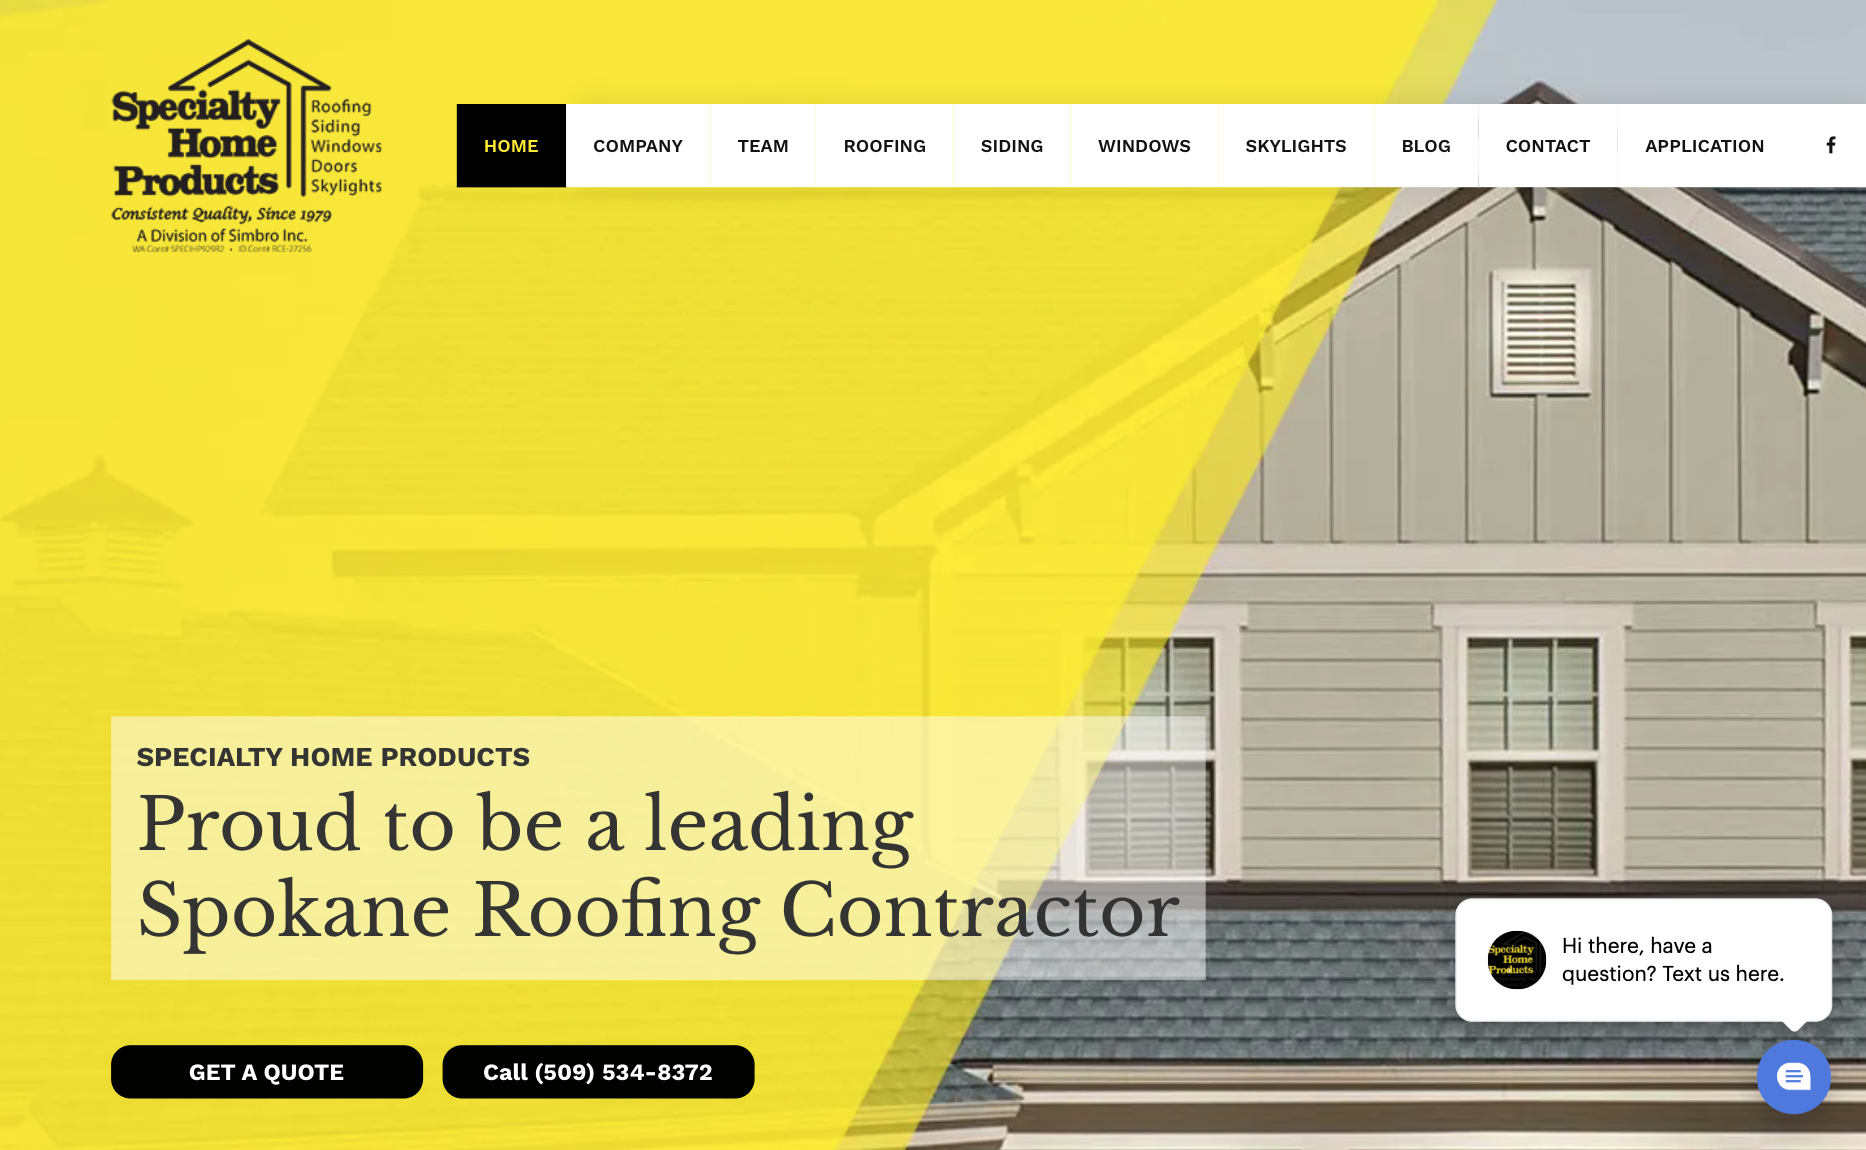 Specialty Home Products website screenshot